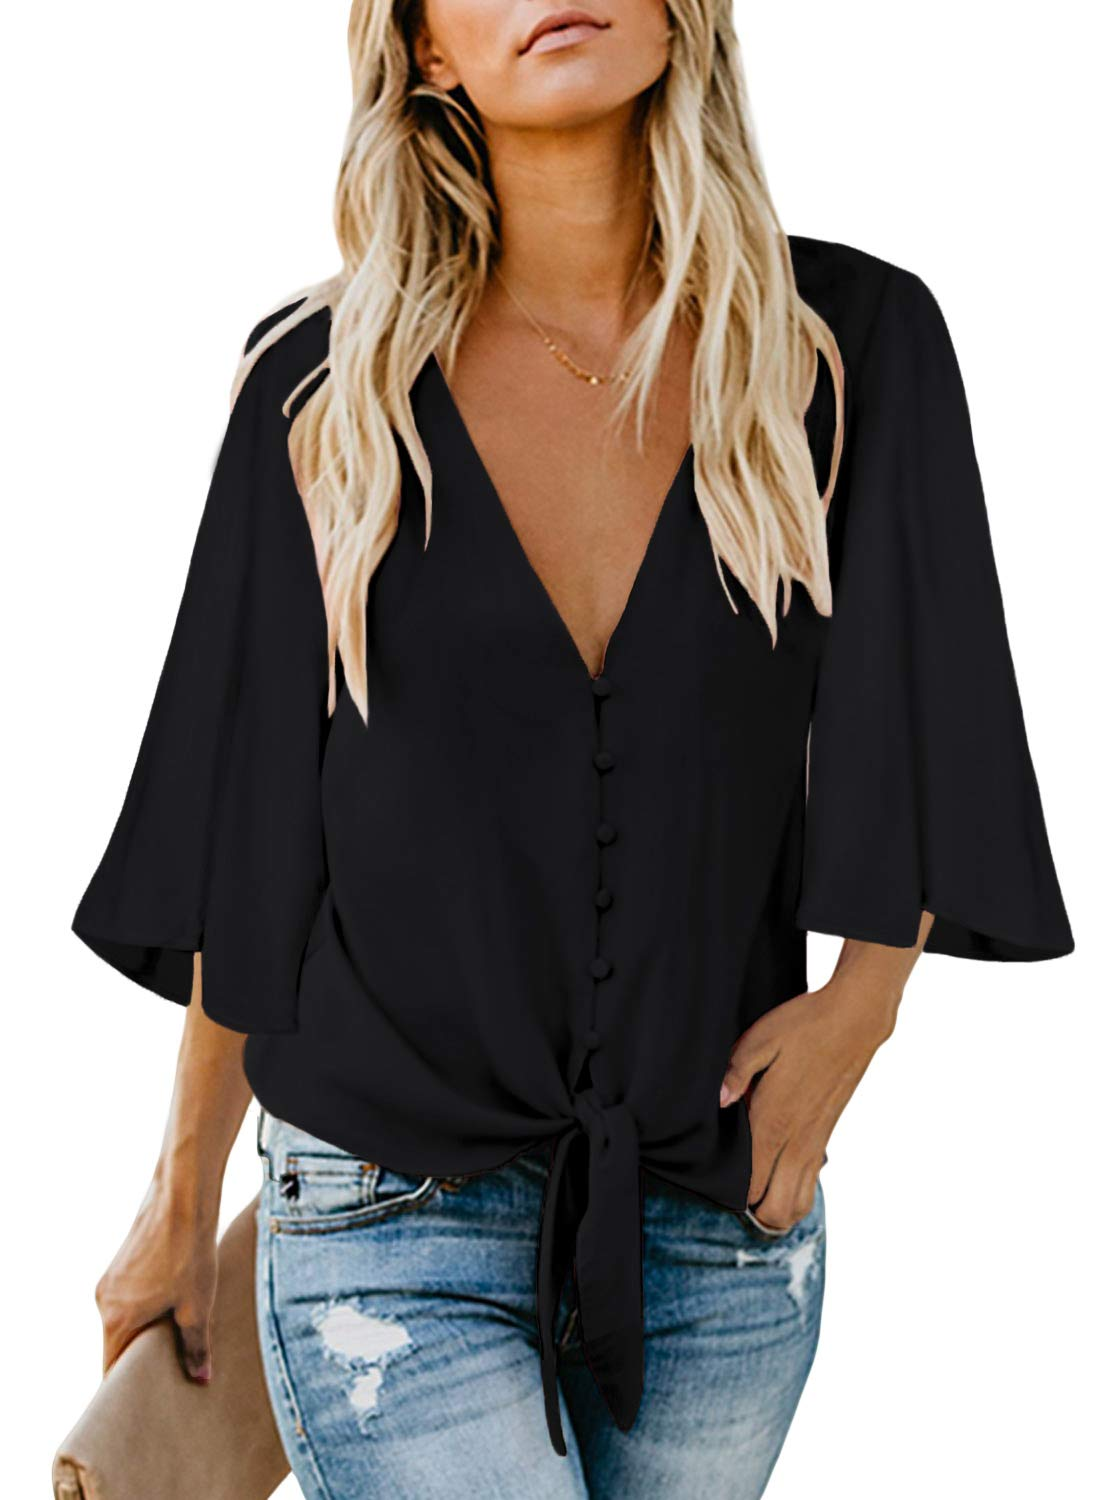 Biucly Women's Casual Stylish V Neck Button Down Floral Print Cuffed Sleeve Blouses Shirts Tops Pullover S-2XL